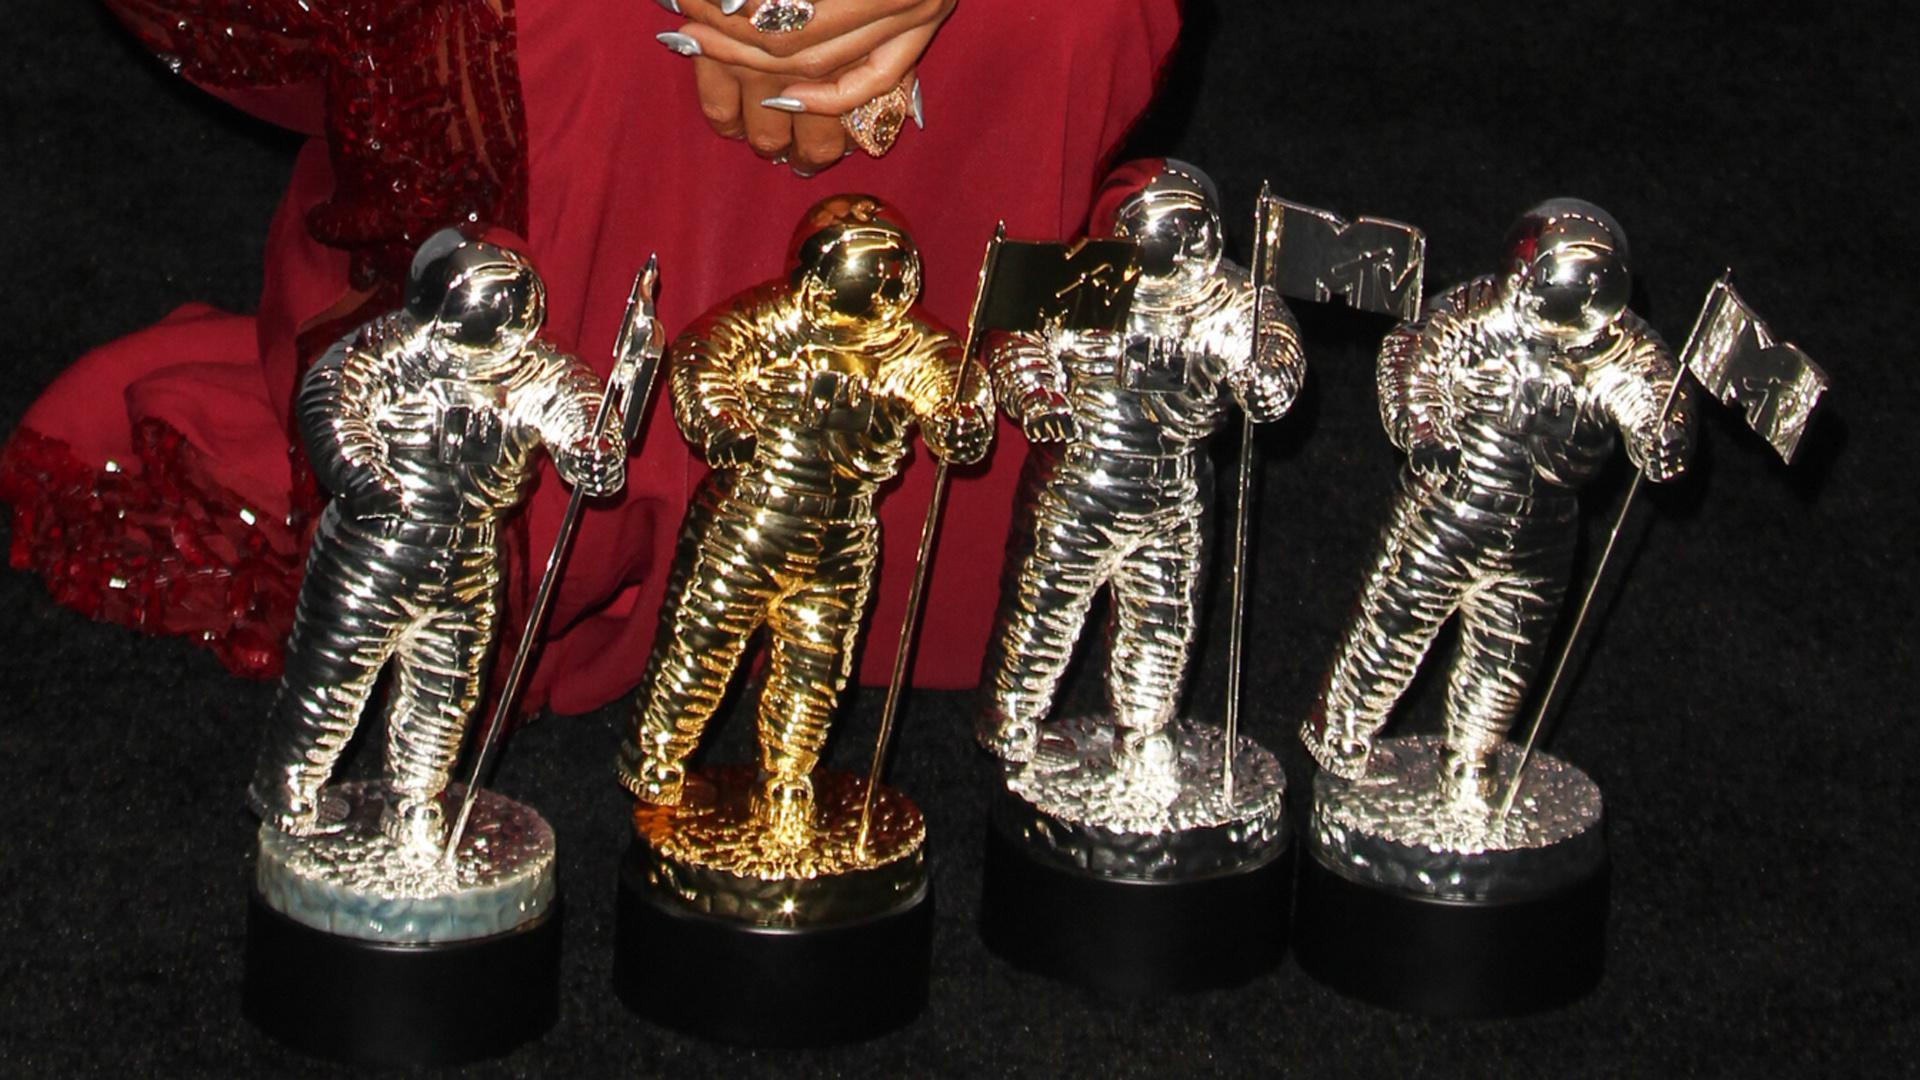 2014 MTV VMAs: Who hit the red carpet looking their best?